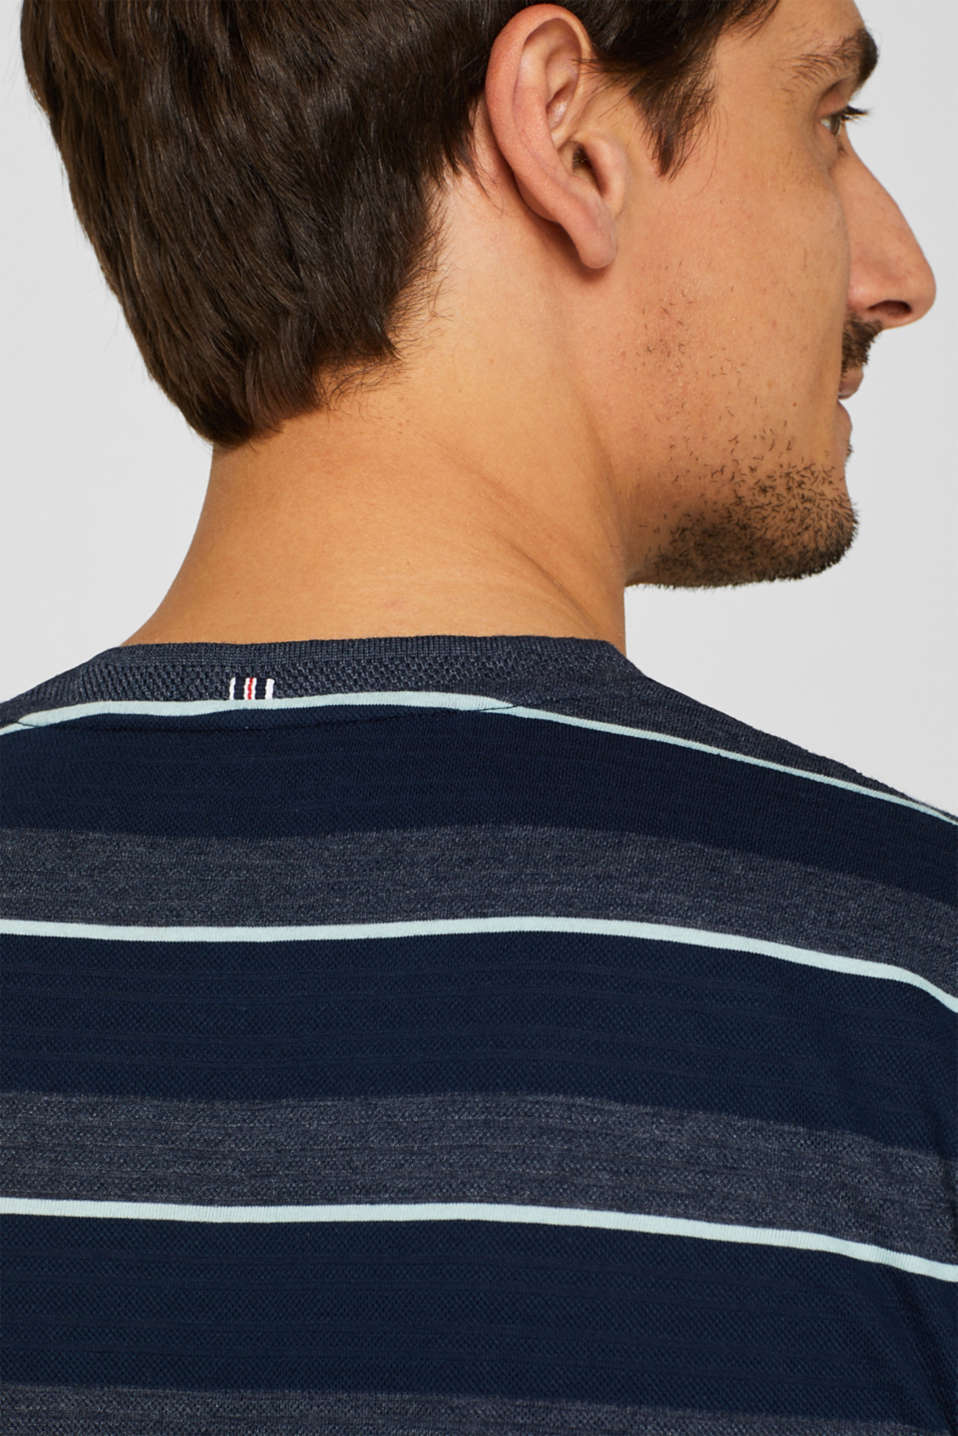 Jersey T-shirt with textured stripes, NAVY, detail image number 5